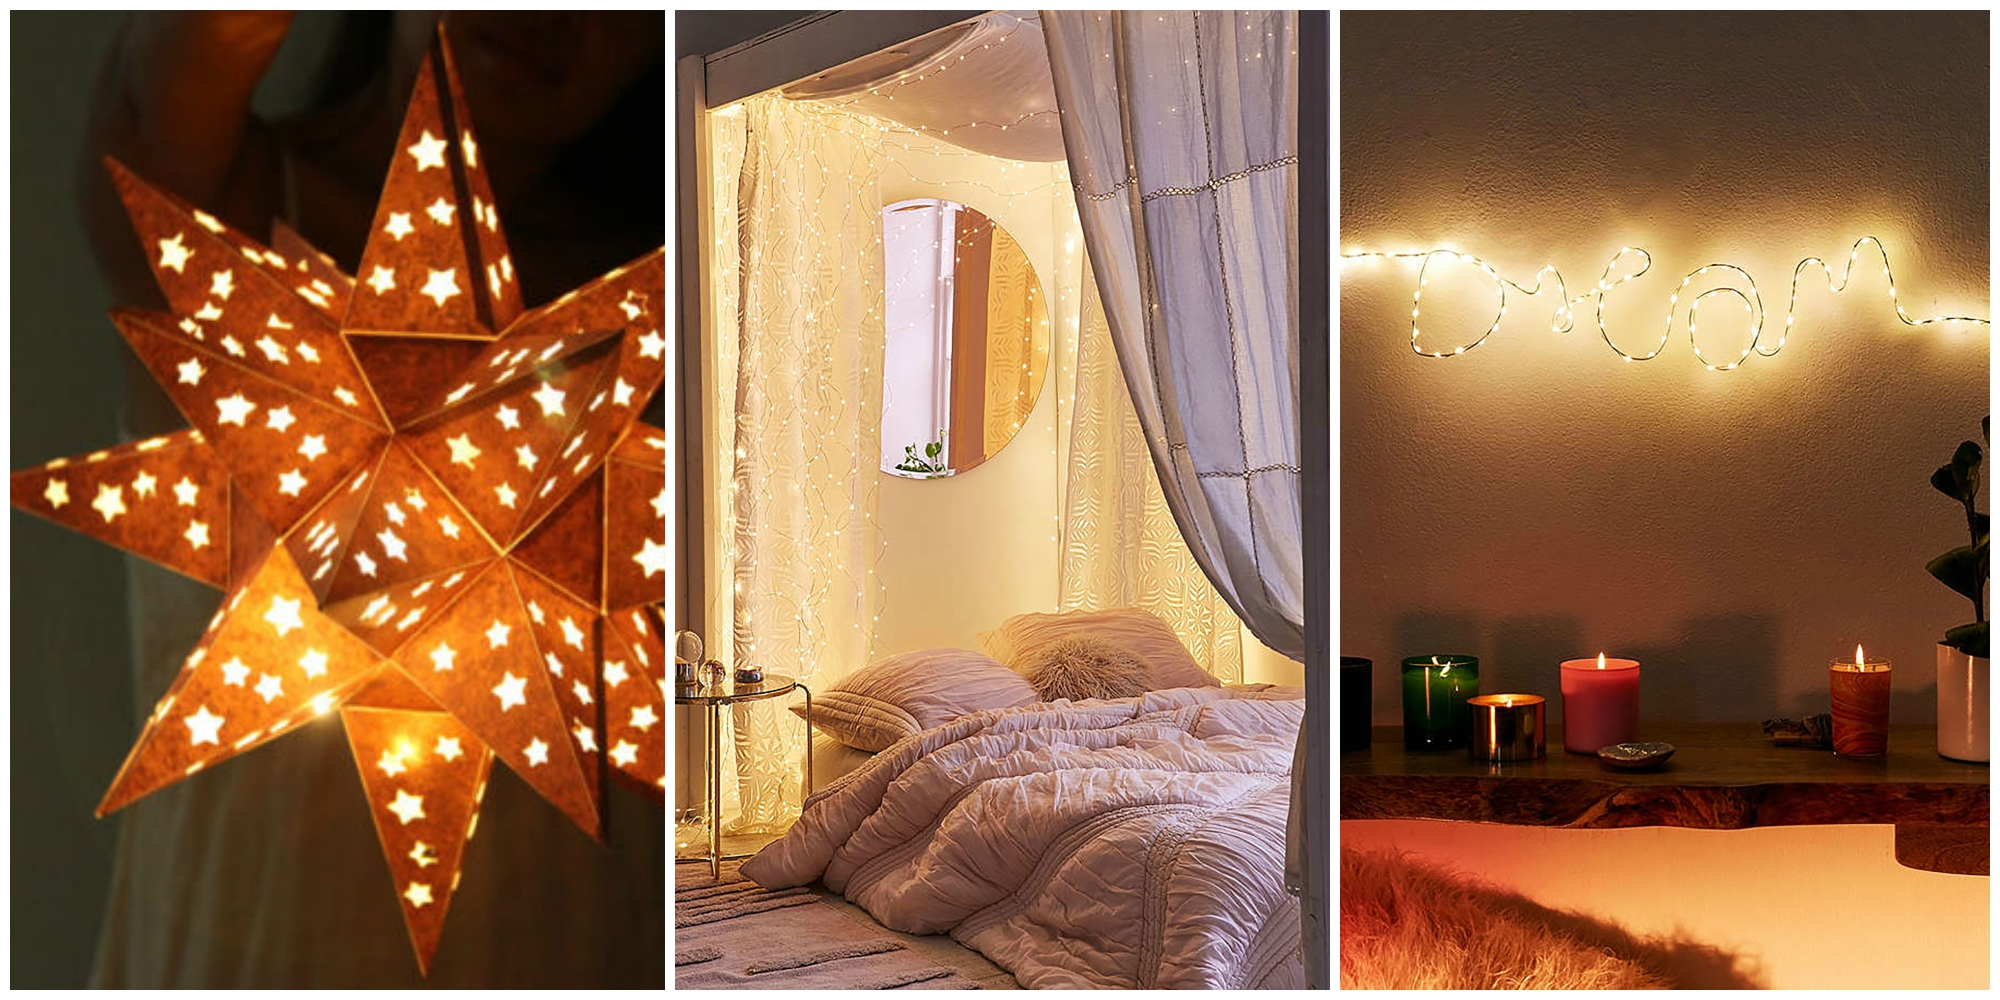 diy bedroom lighting ideas 24 ways to decorate your home with lights 15180